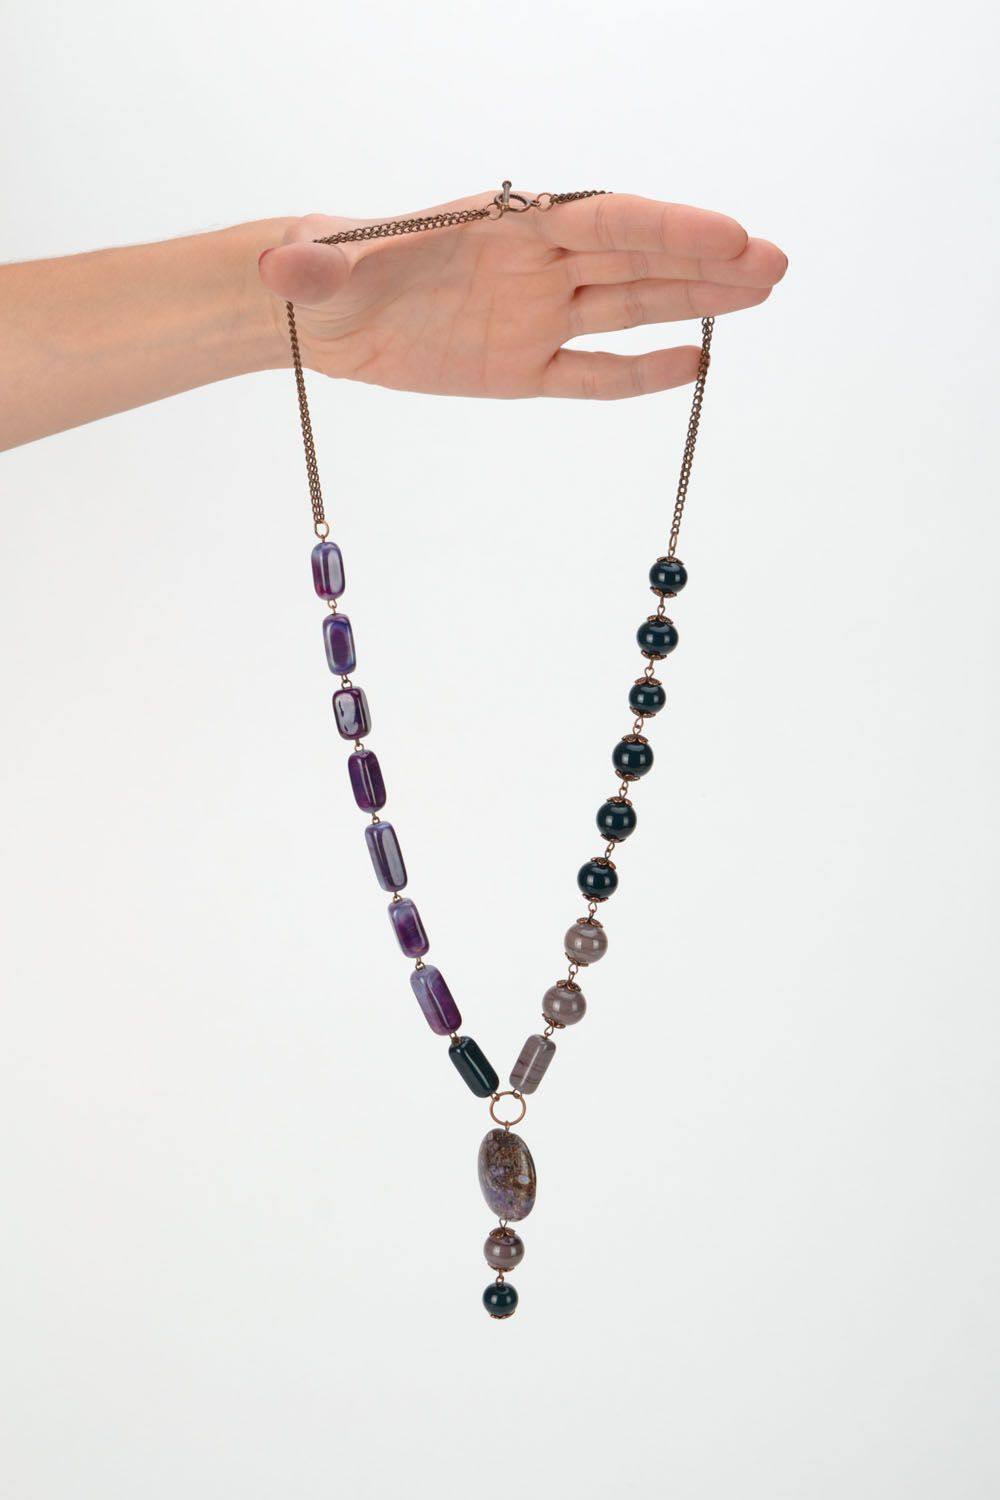 Bead necklace with adjustable length photo 2